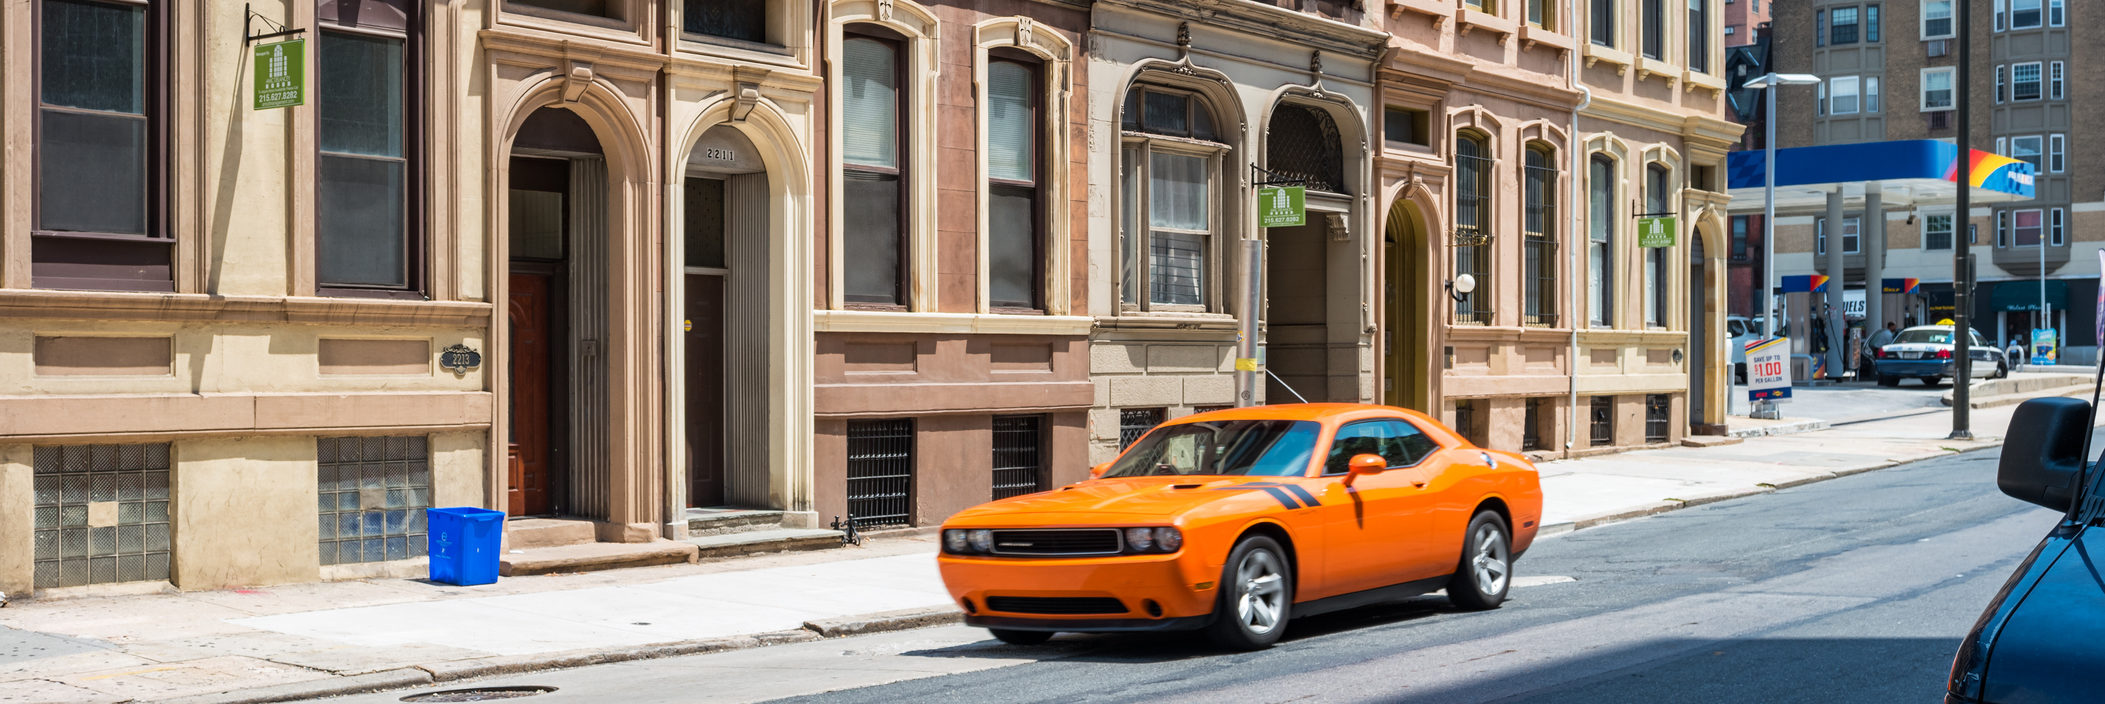 challenger in front of townhouses